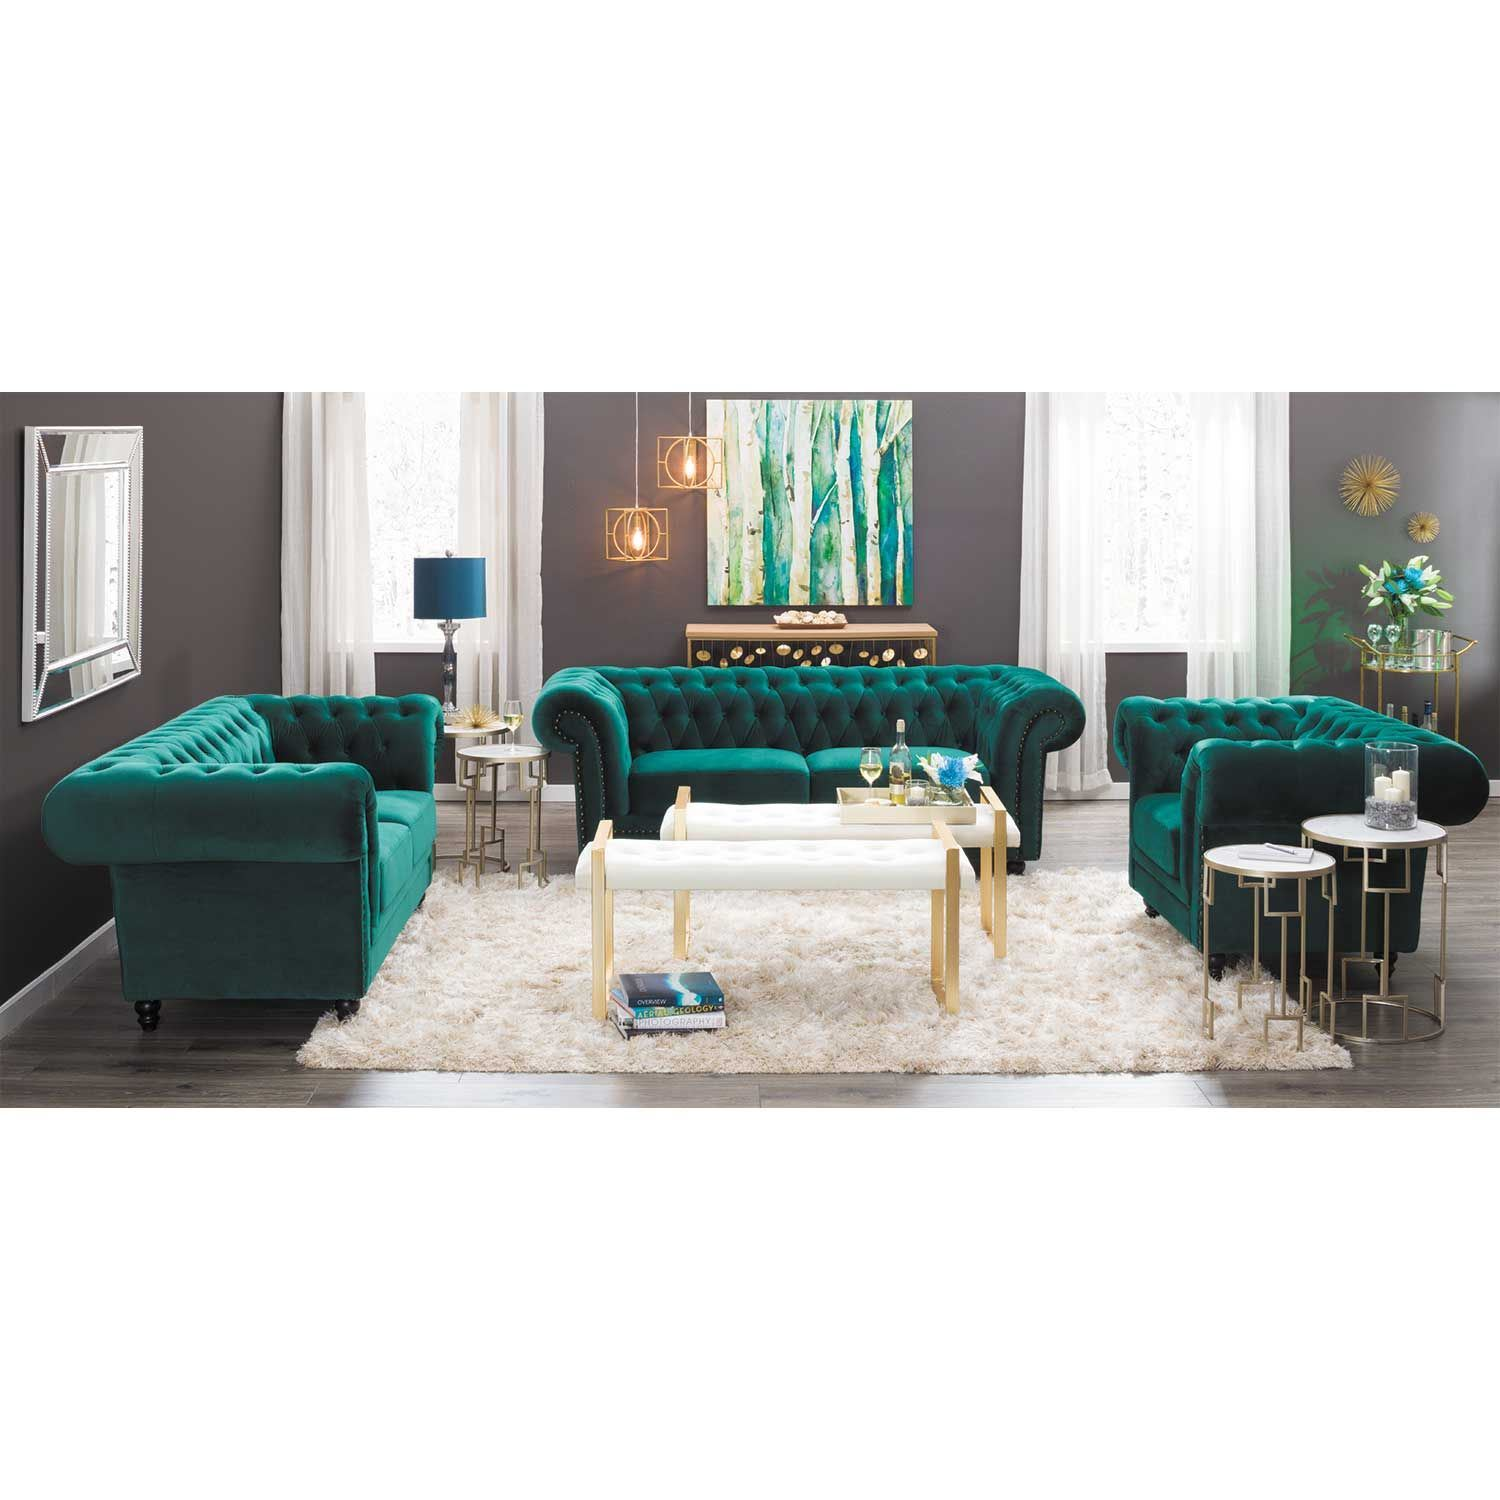 Picture Of Callie Tufted Emerald Sofa Picture Of Callie Tufted Emerald Sofa  ...